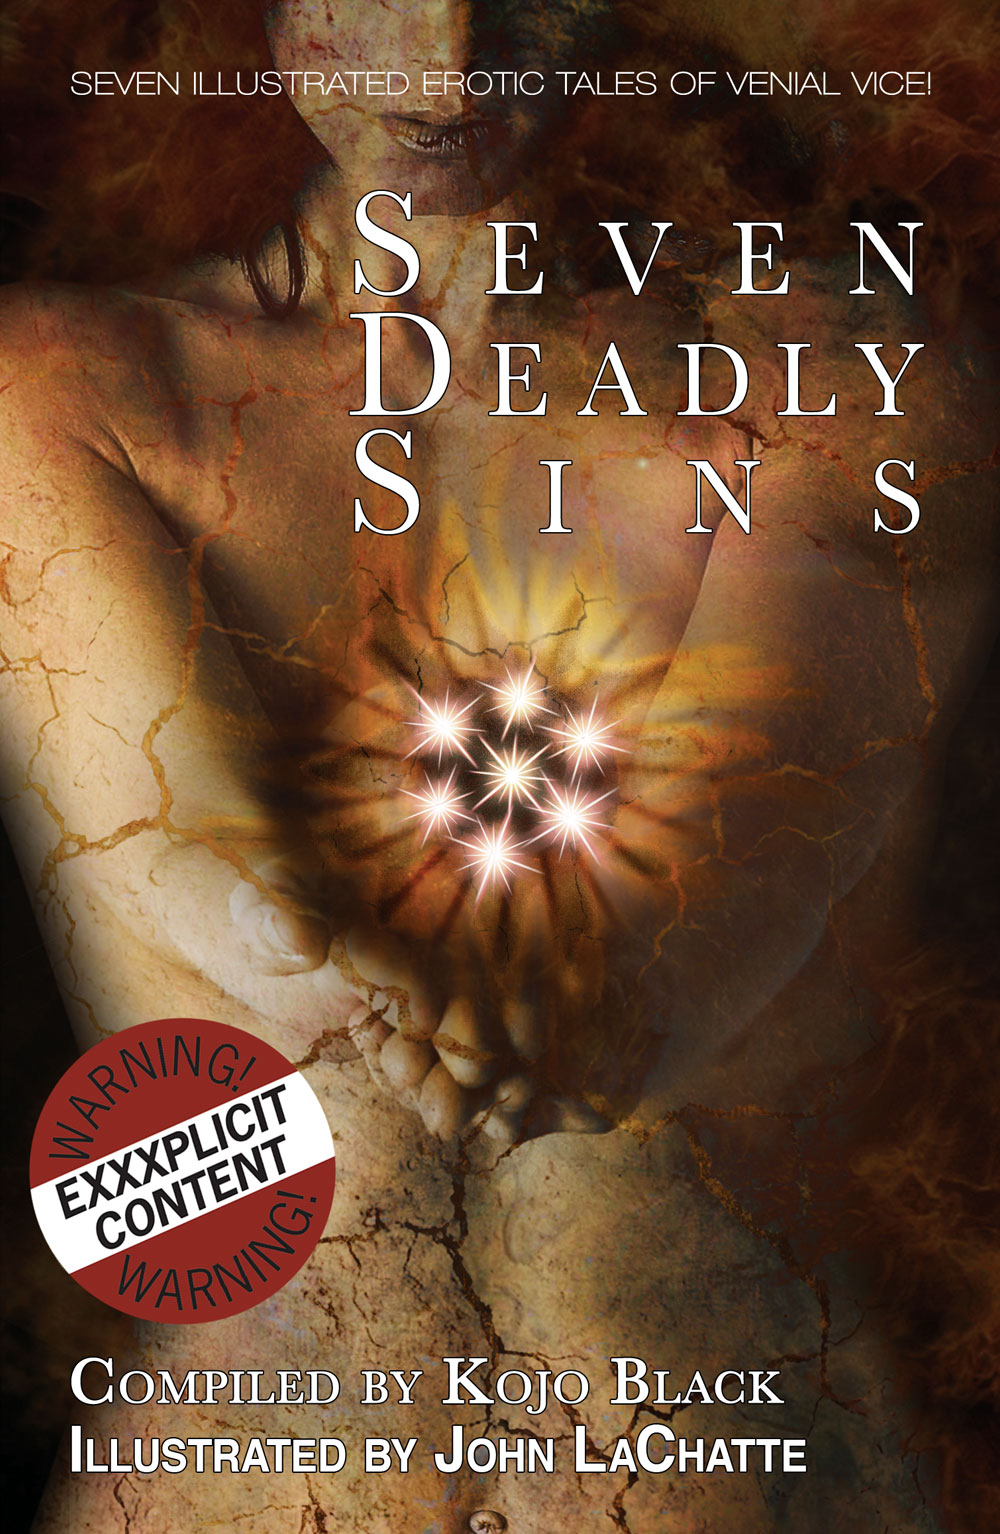 Seven Deadly Sins Cover Galleries from Extreme XXX Tits. Was found 14 galleries